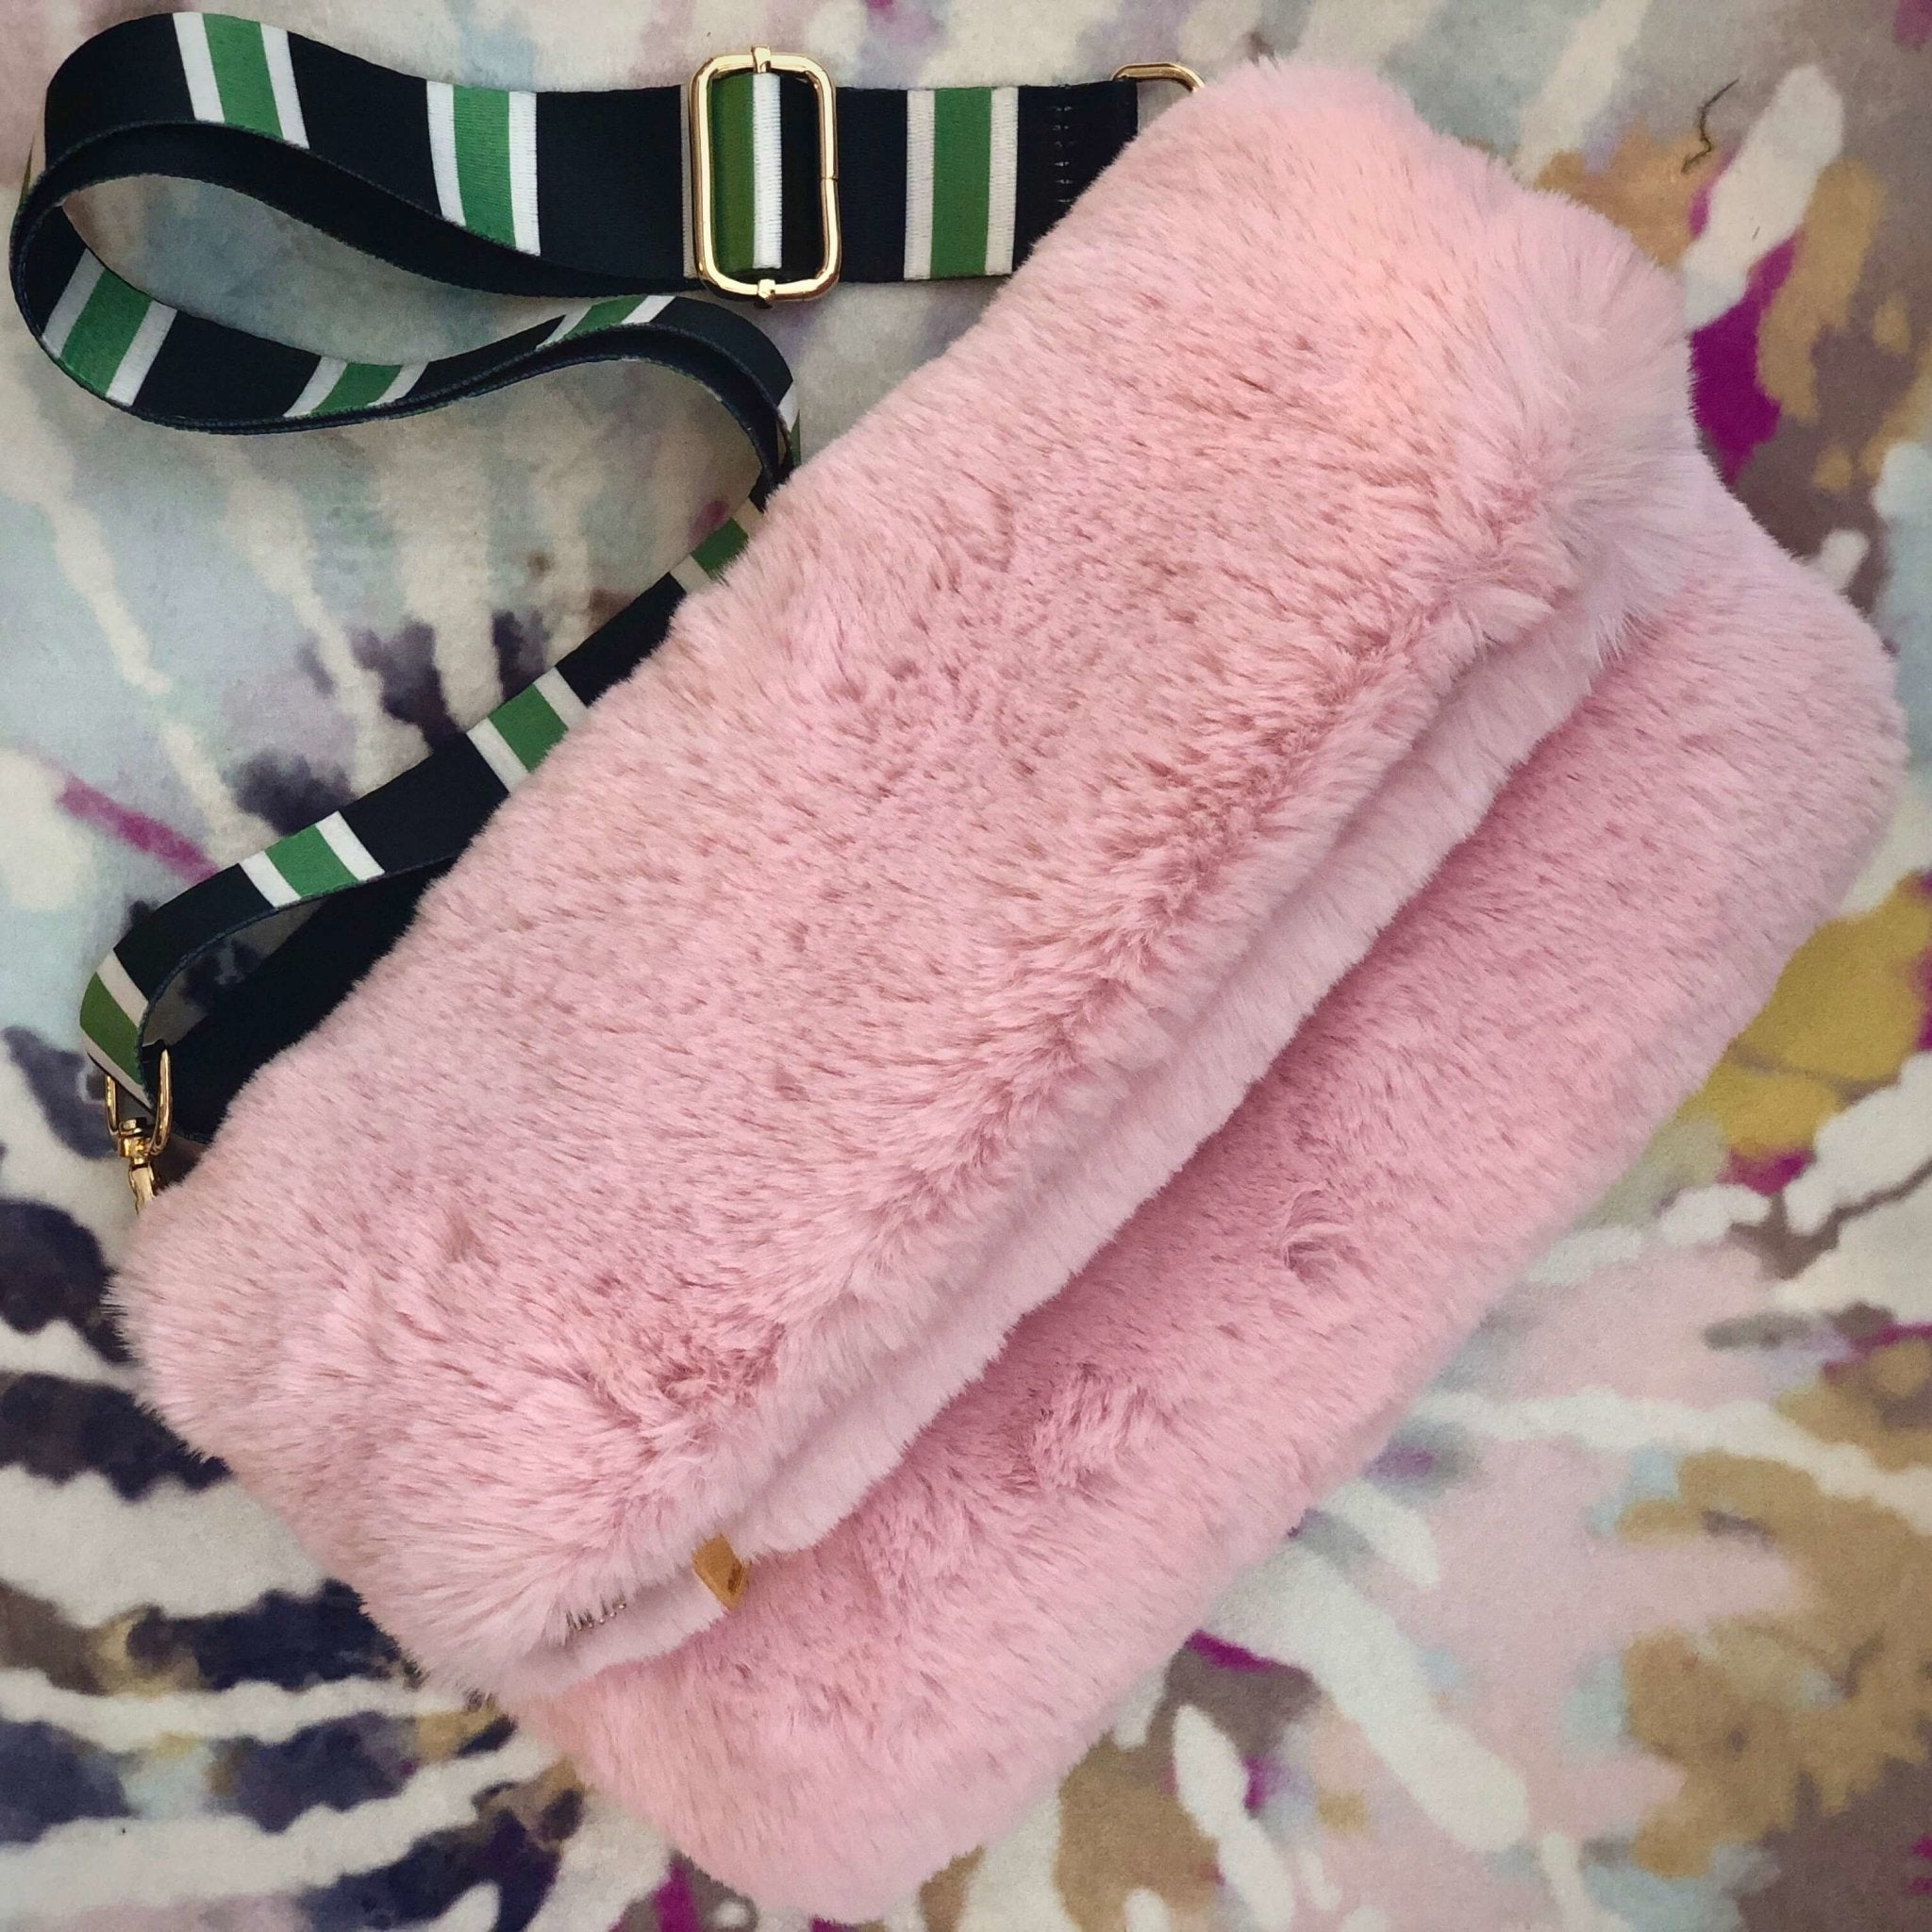 Baby Pink Faux Fur Bag - The Clothing LoungeRebecca J Mills